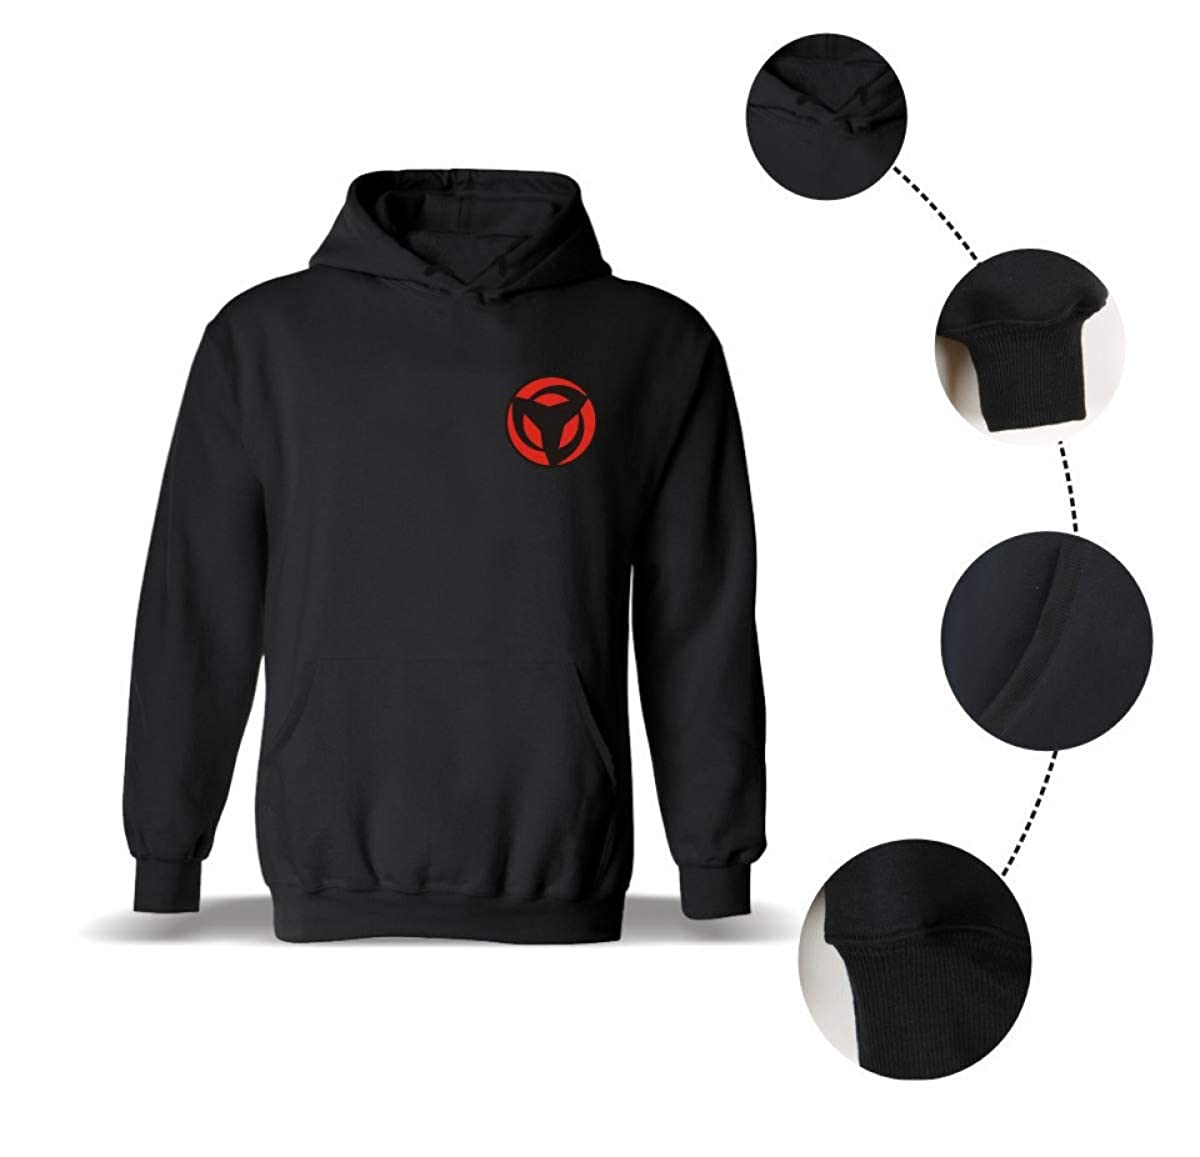 Amazon.com: WEEKEND SHOP Hoodie Naruto Hoodies Sweatshirts Uchiha Syaringan Hooded Men Hokage Ninjia Men: Clothing